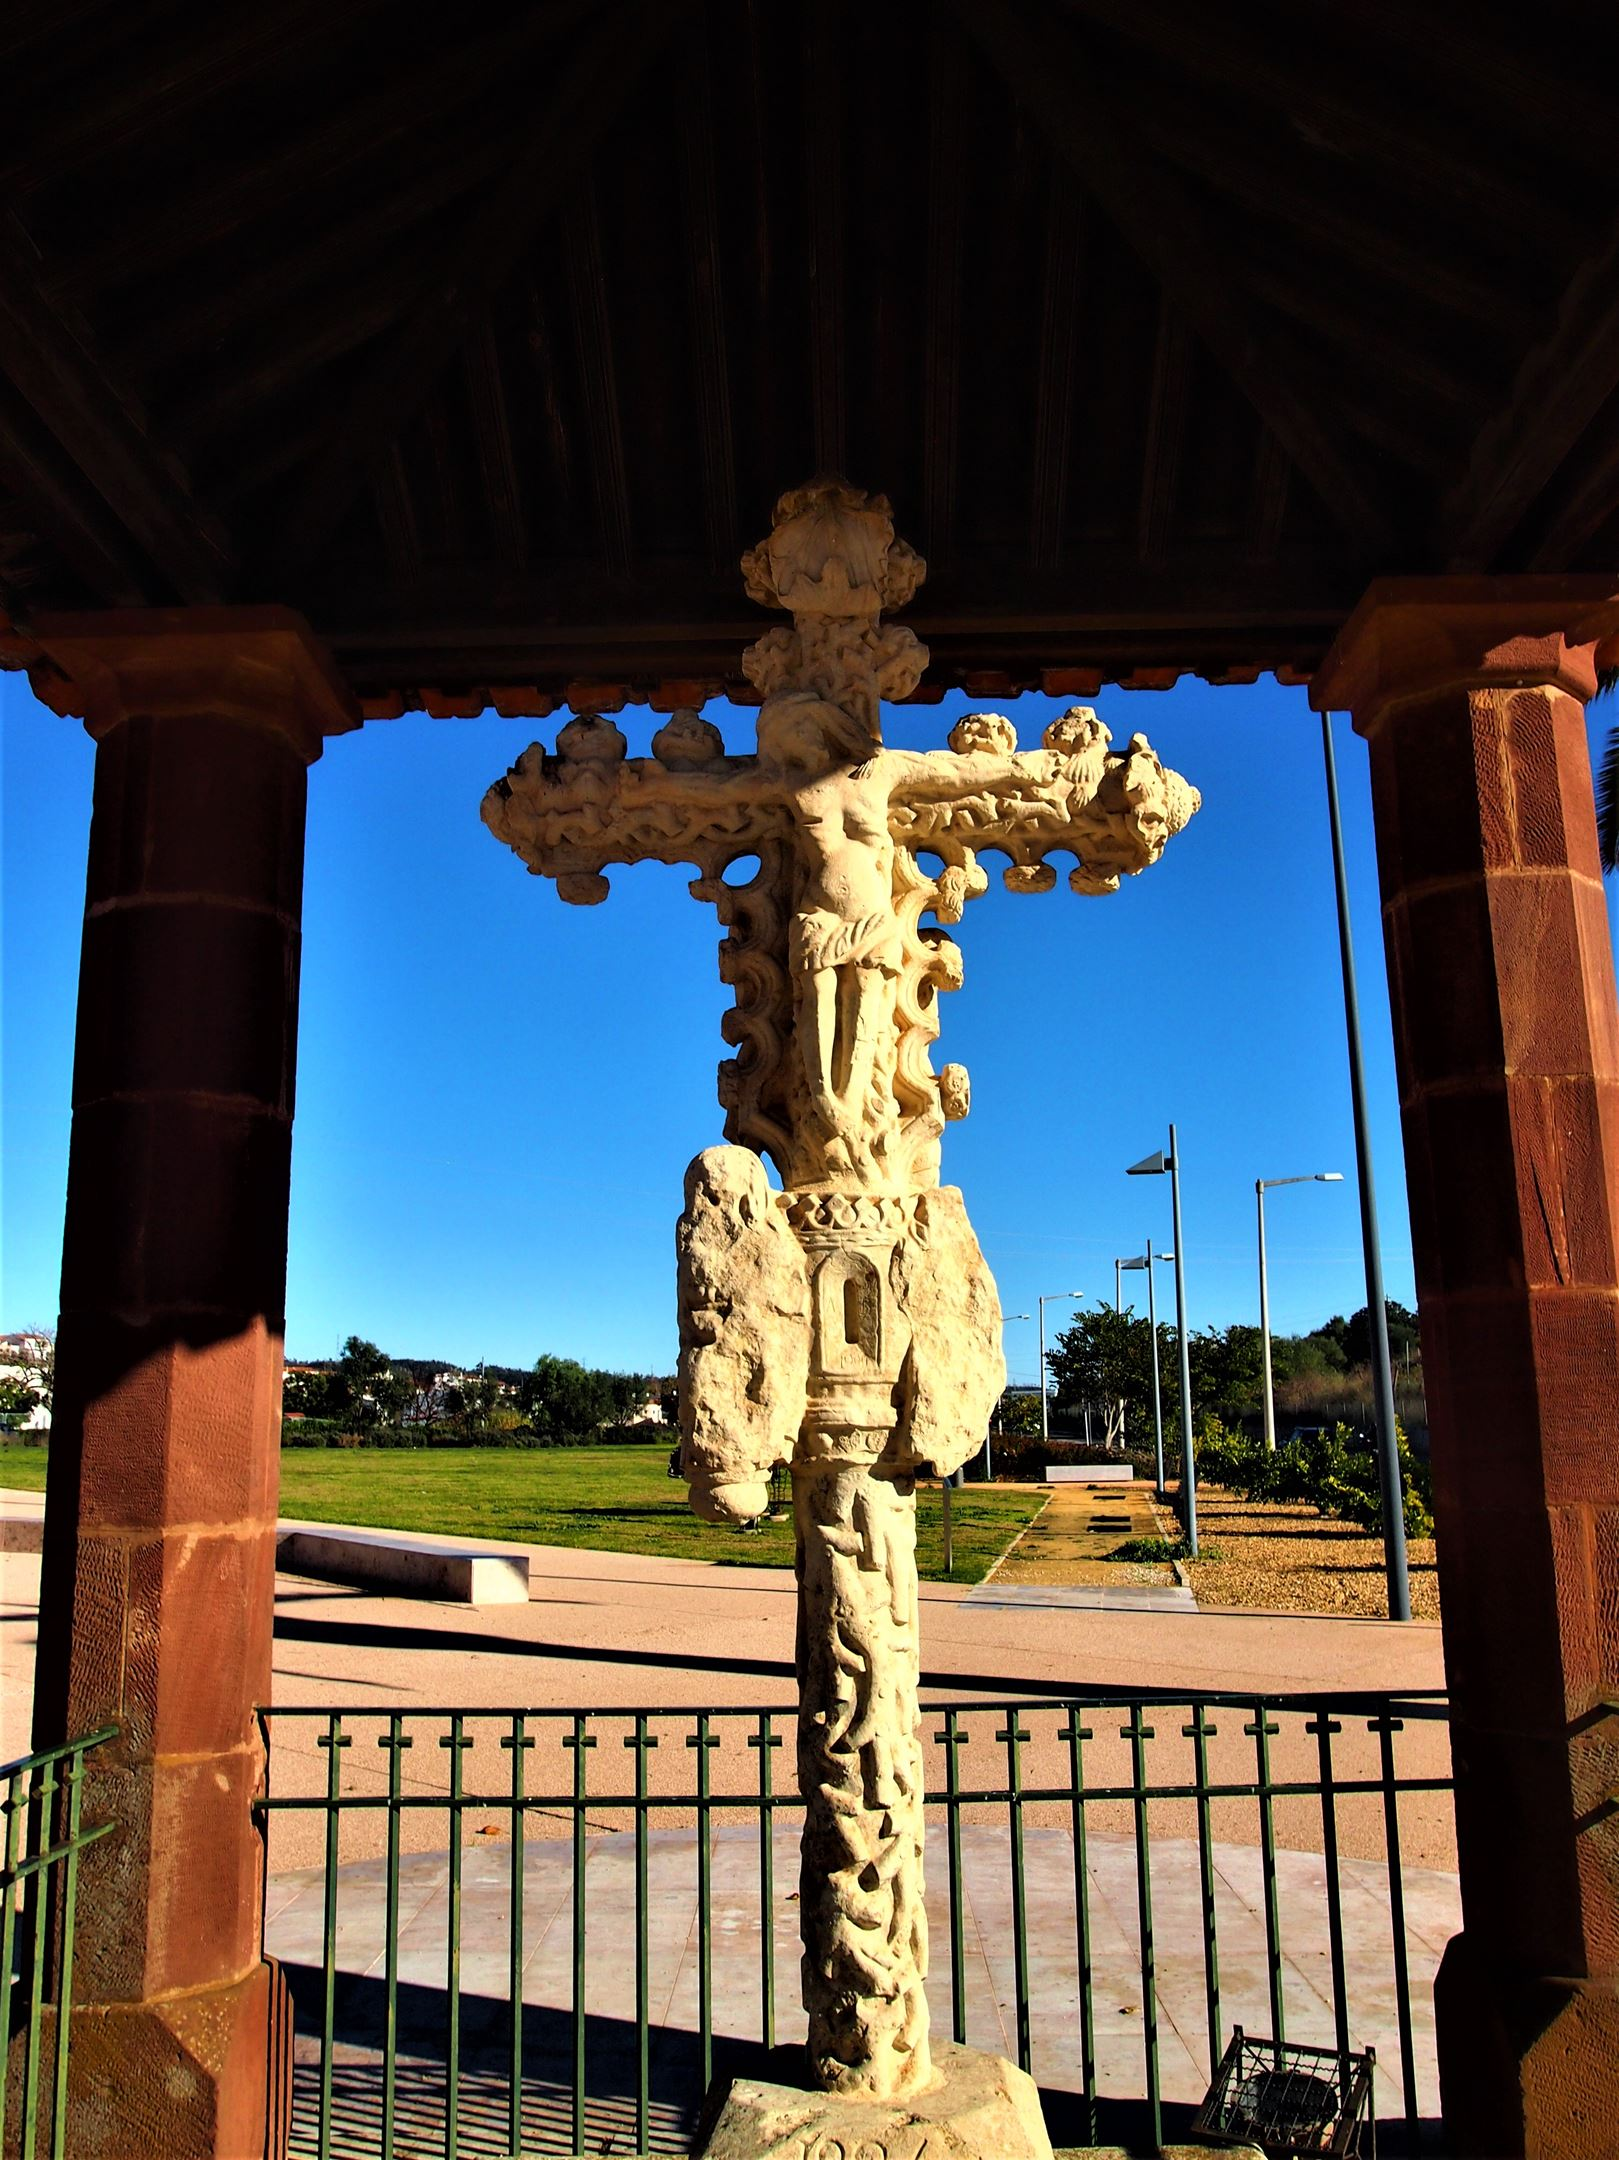 Cruz de Portugal (cross of Portugal), Silves - believed to date from the 15th Century